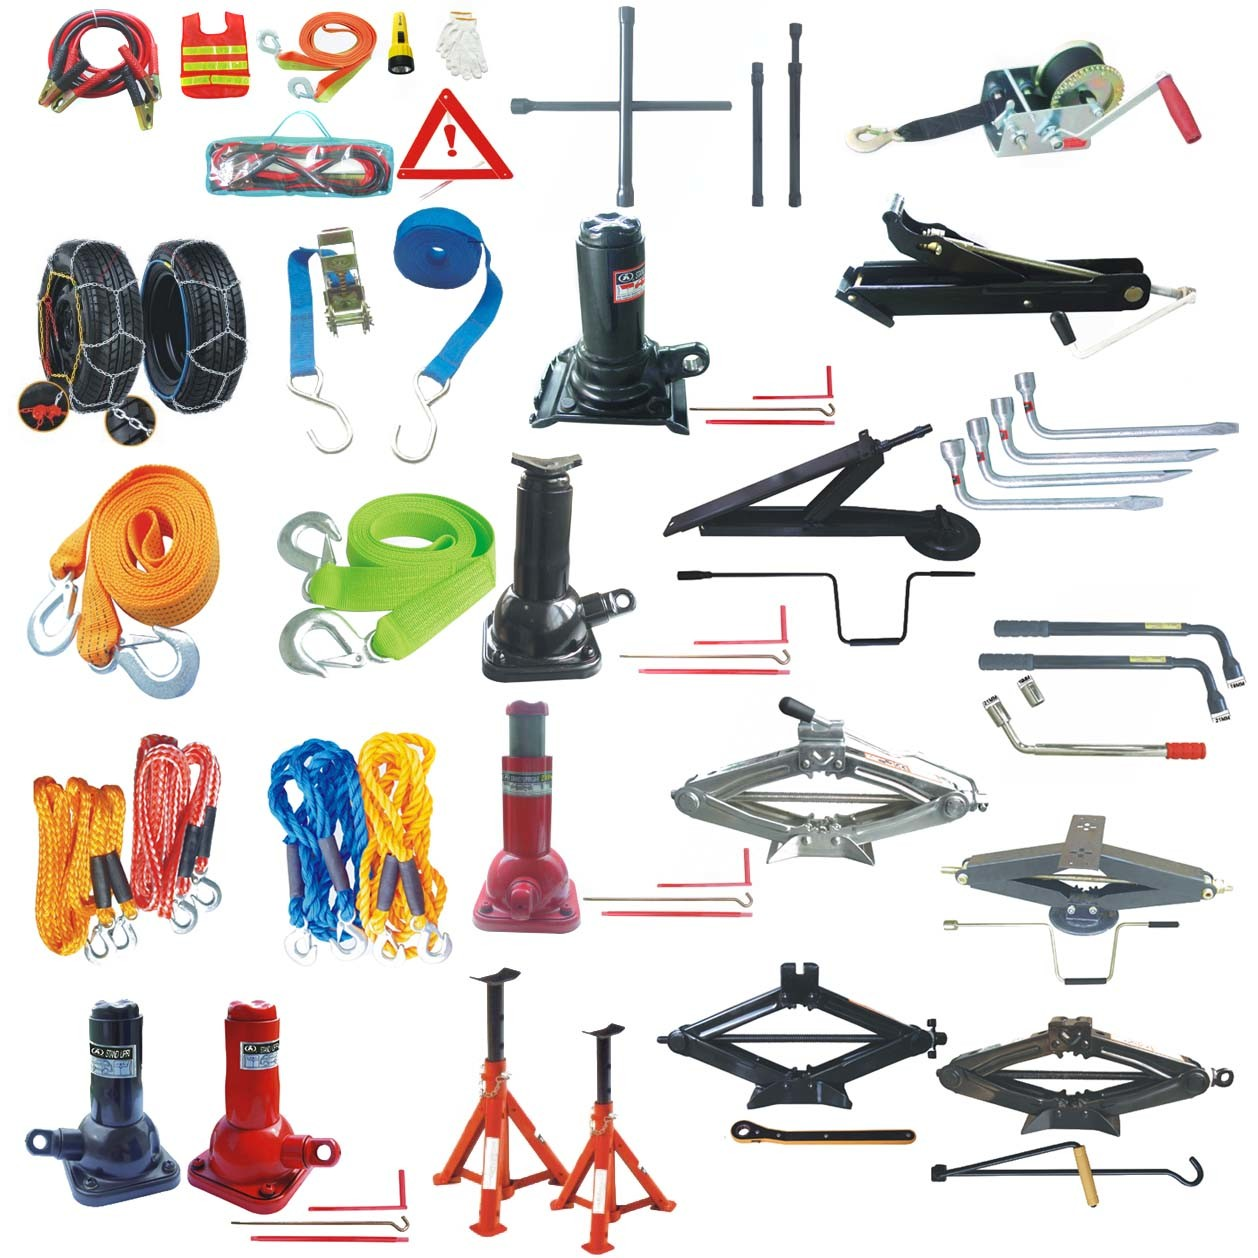 China Auto Repair Tools Kits China Car Repair Jack